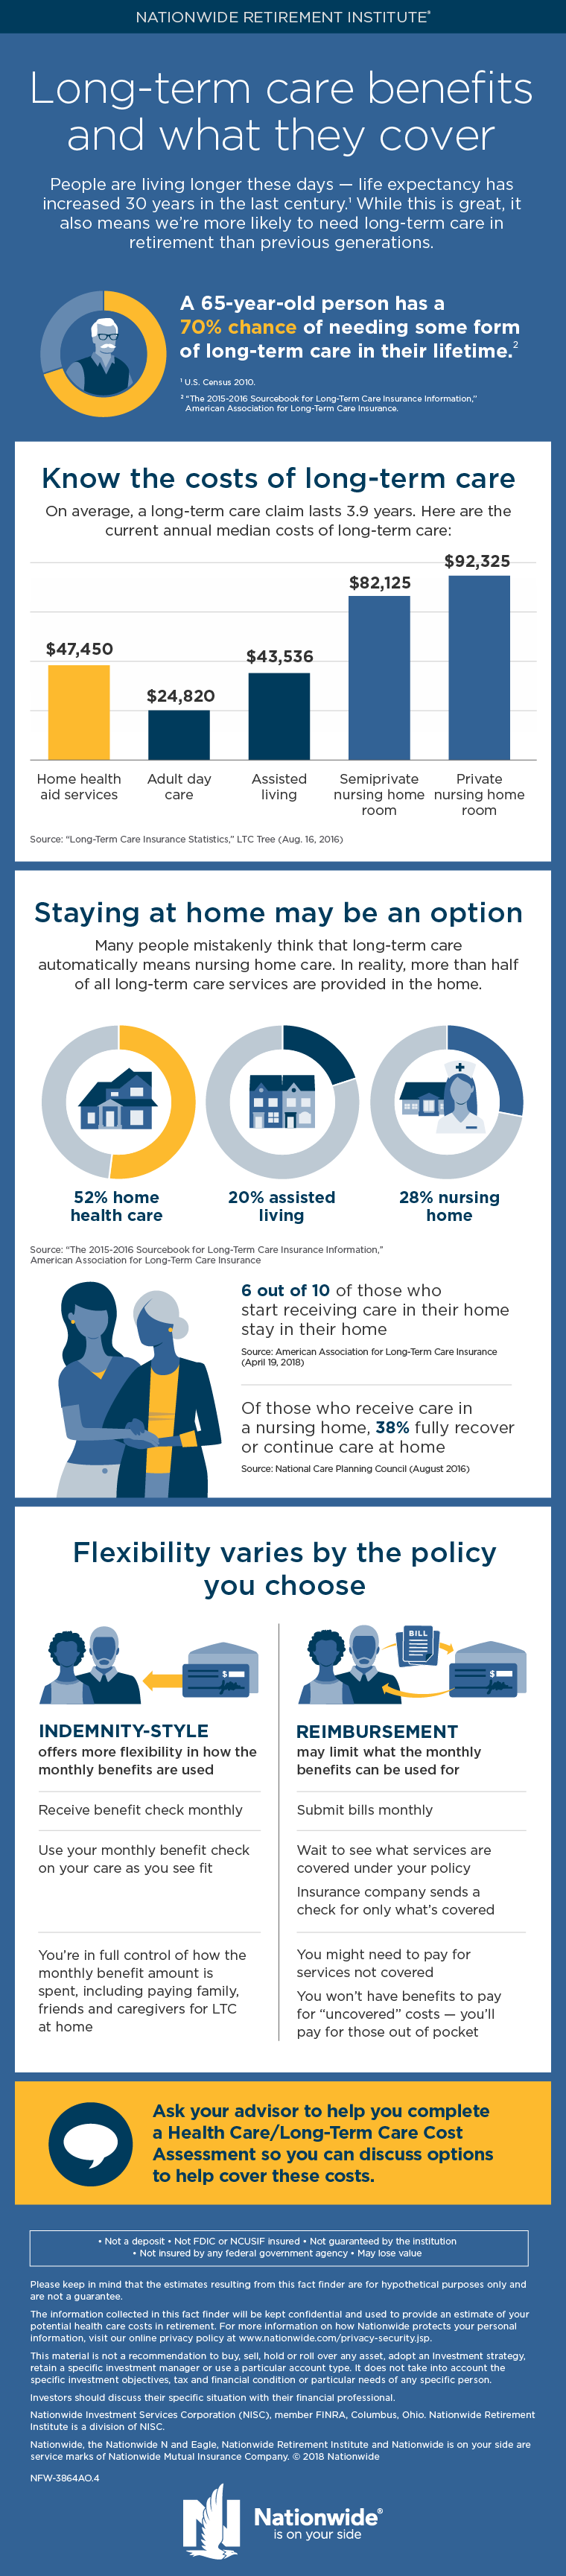 Long-term Care Benefits Infographic - Nationwide